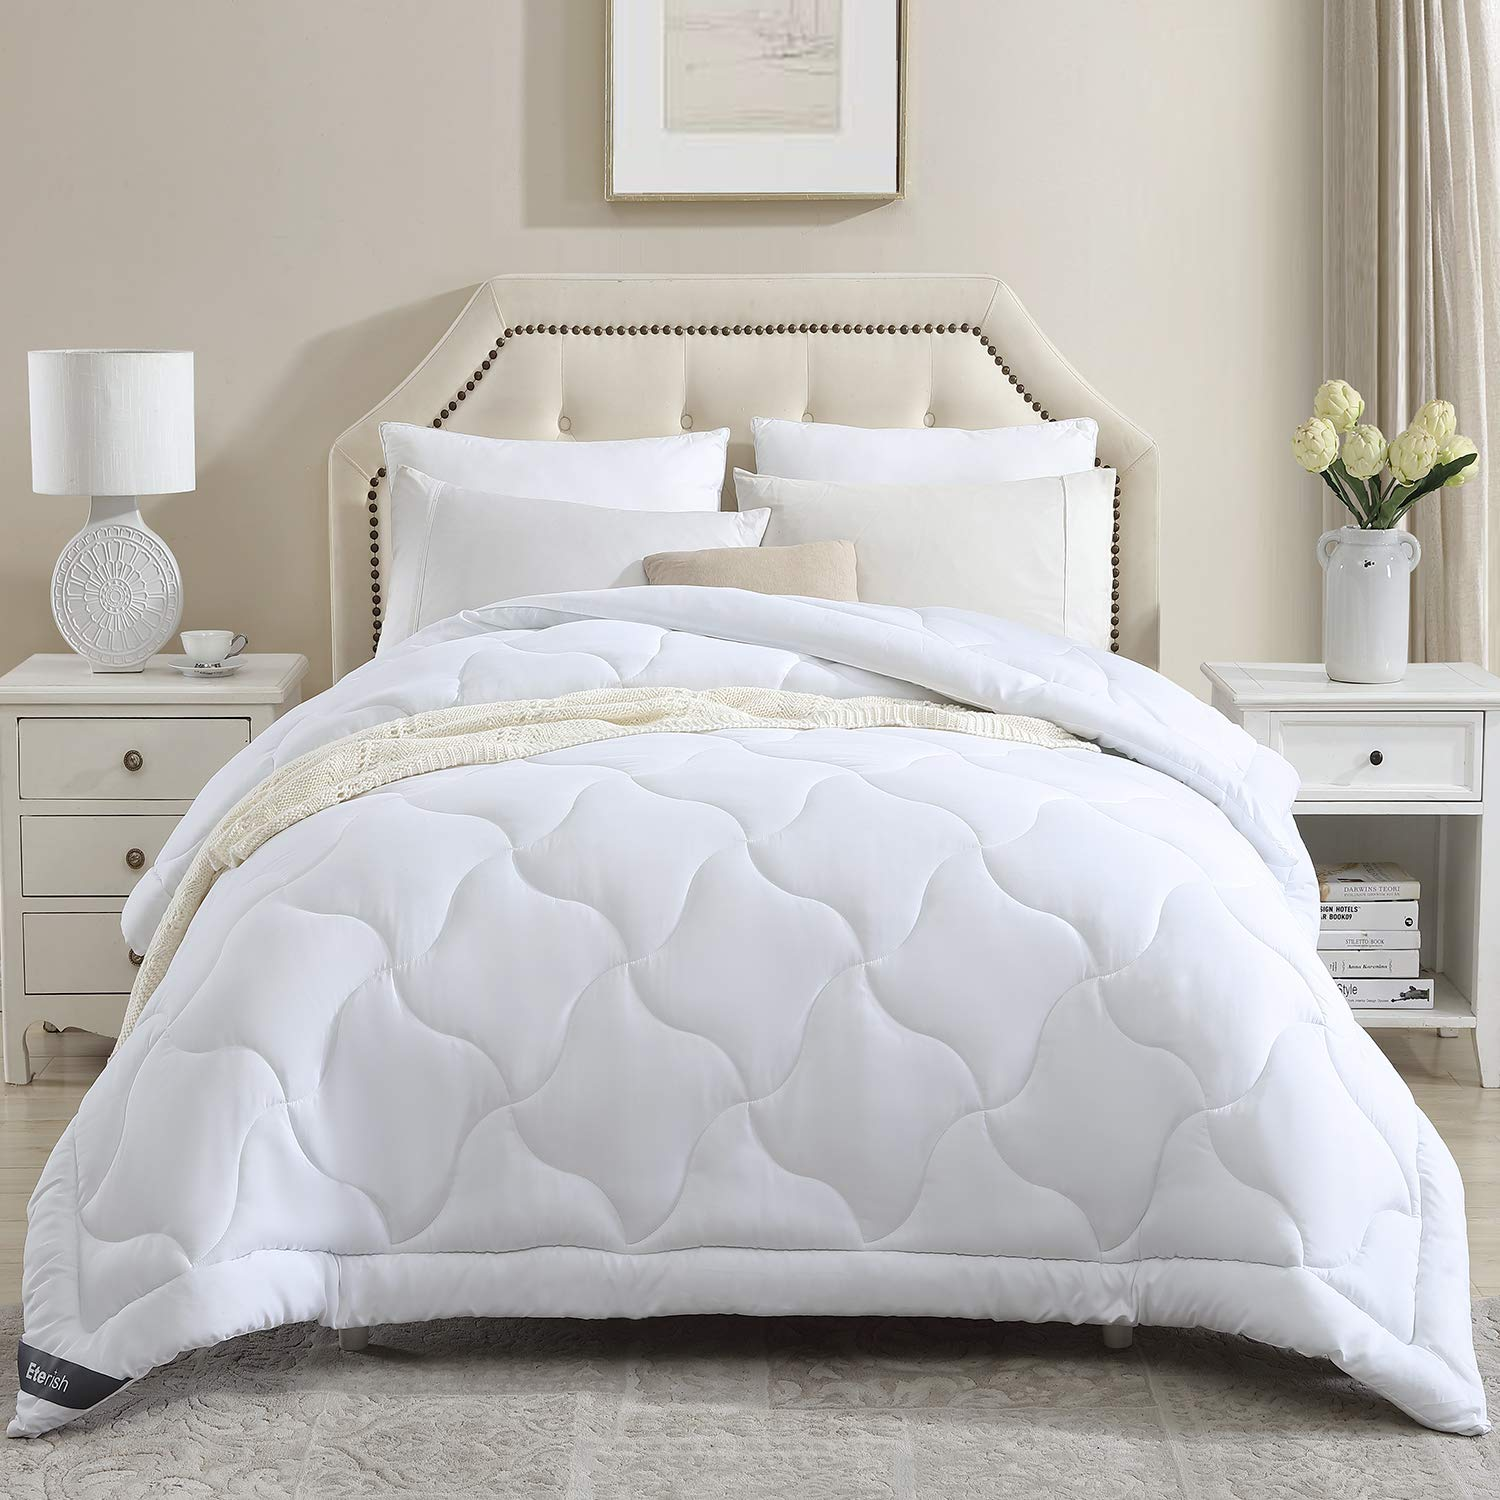 Eterish Quilted Down Alternative Comforter Twin All Season Comforters for Twin Bed